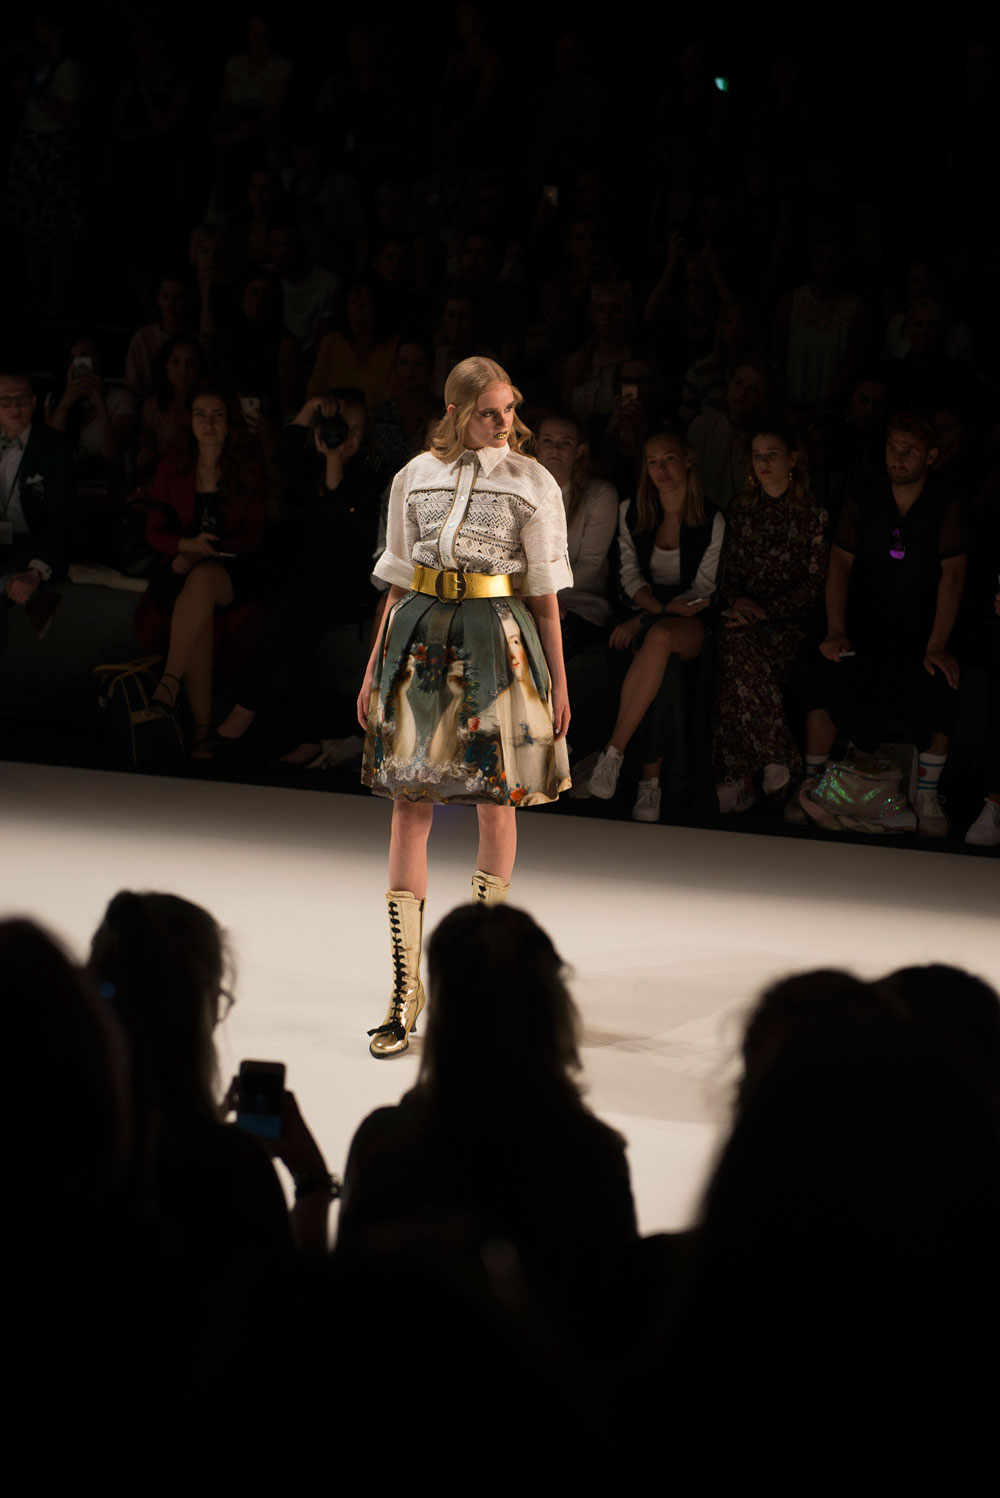 fashionweek-berlin-2016-fashionweek-berlin-2016-0050_3